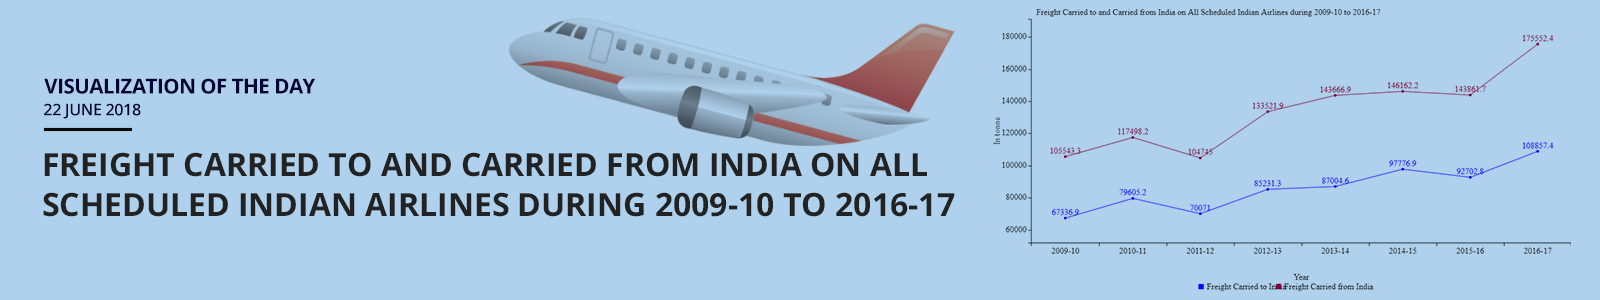 Visualization of the Day - 22nd  June 2018 : Freight Carried to and Carried from India on All Scheduled Indian Airlines during 2009-10 to 2016-17